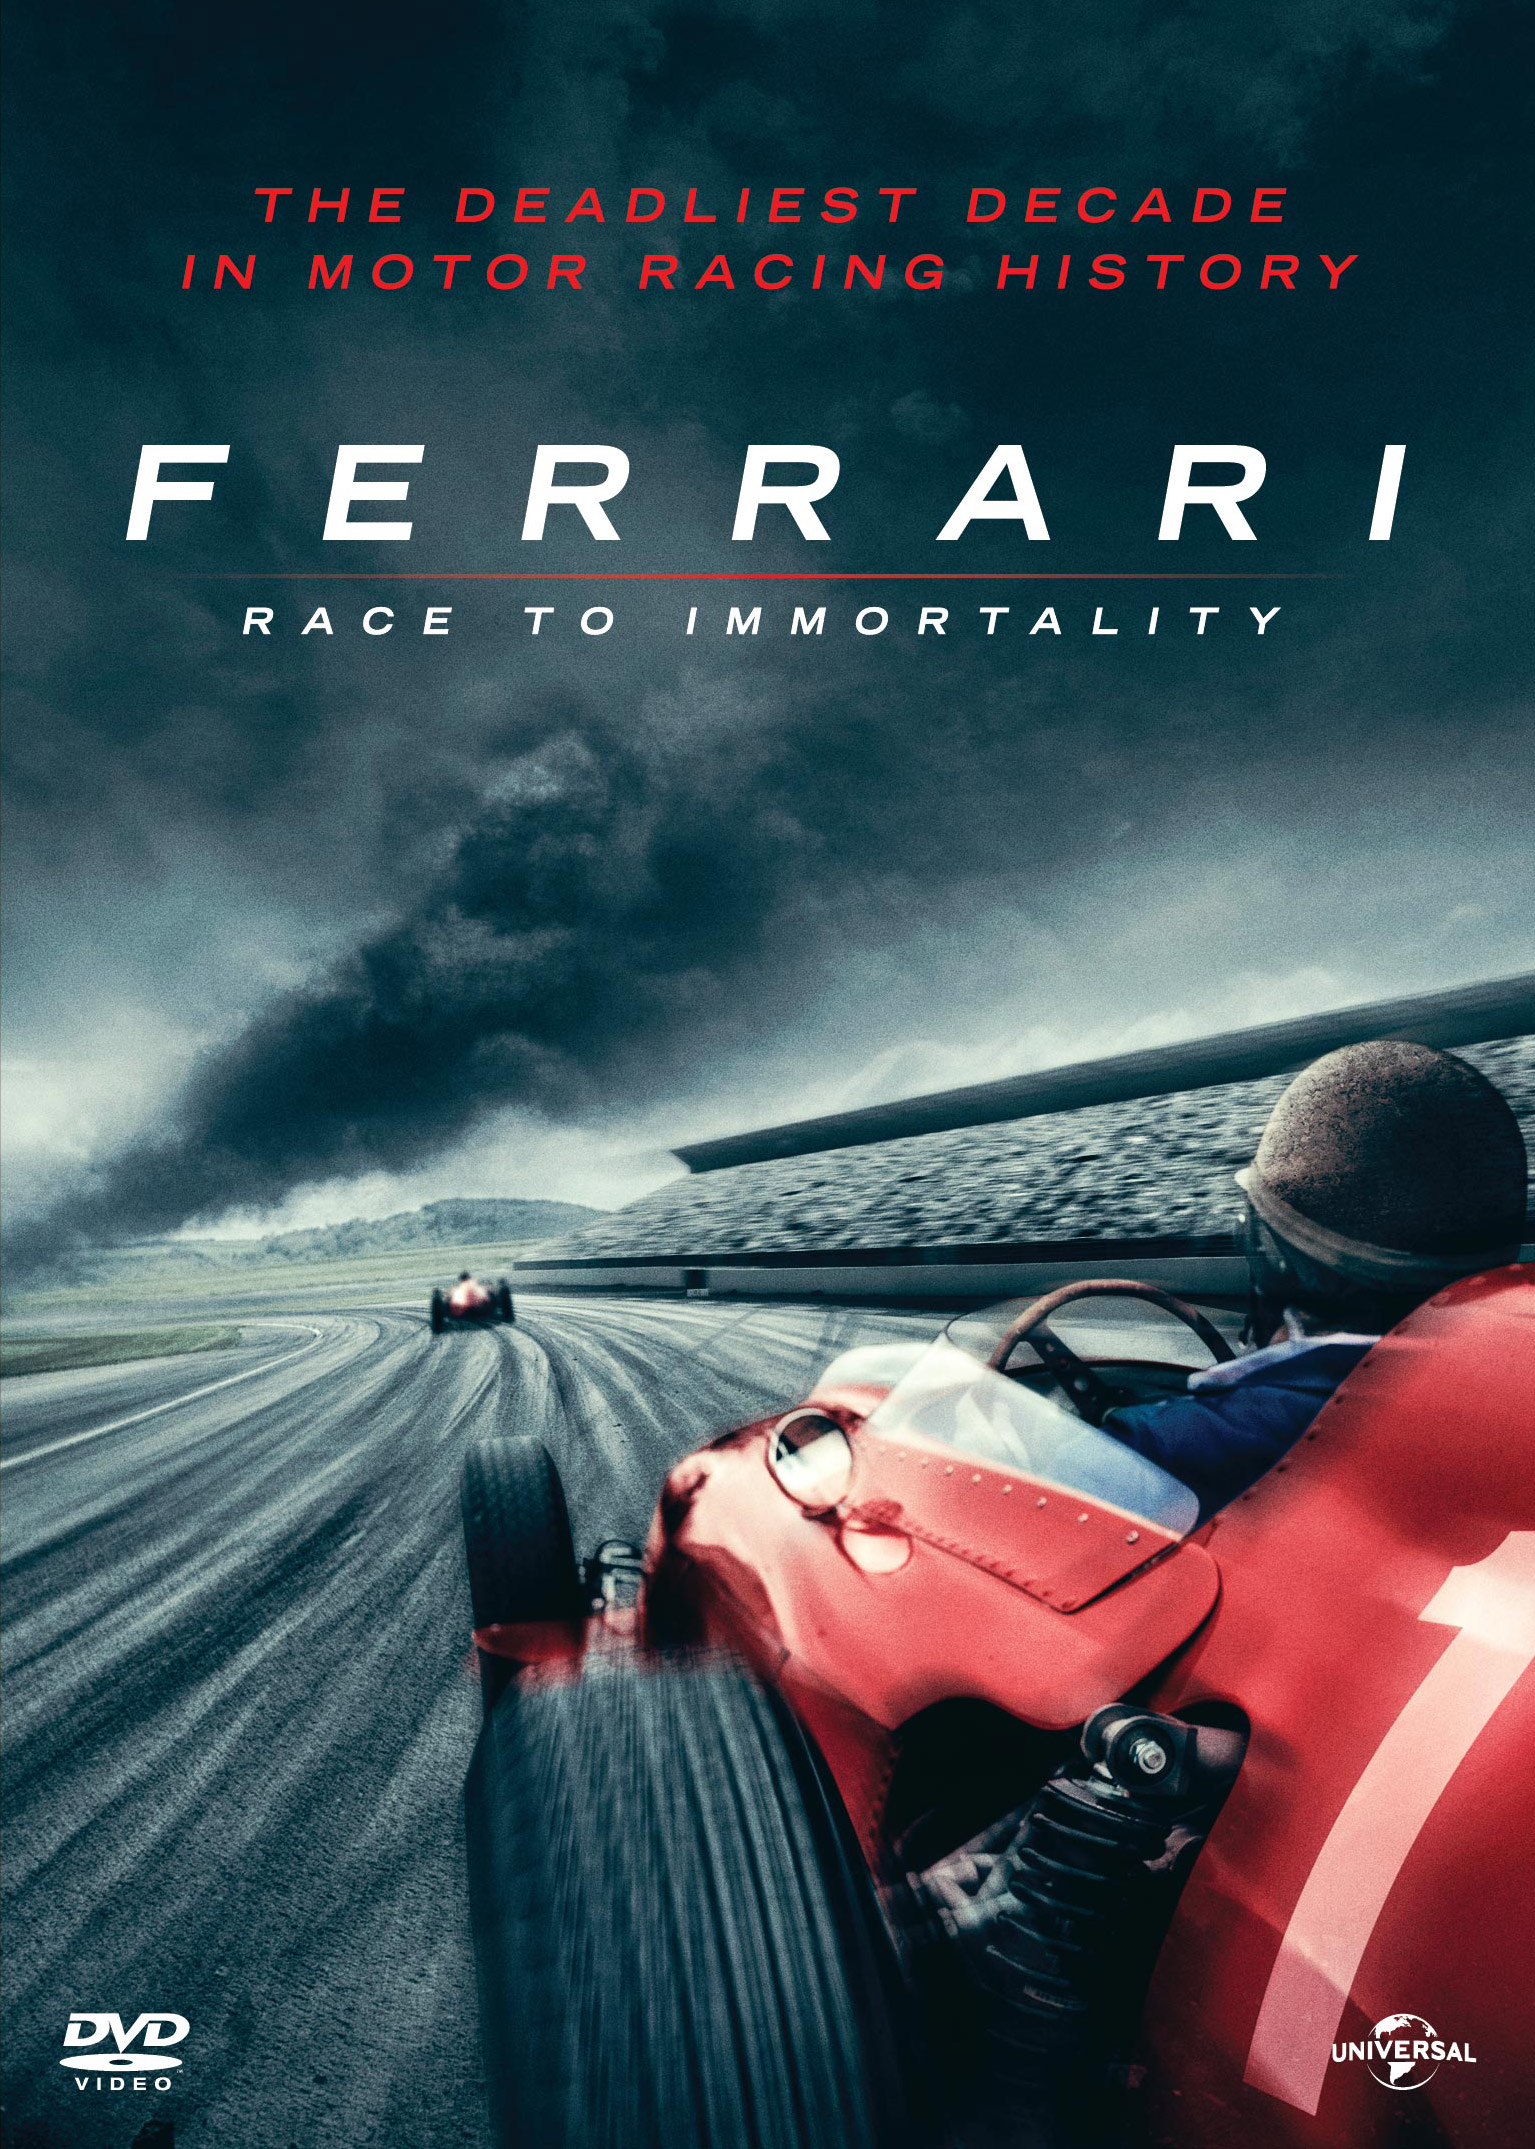 Ferrari: Race To Immortatlity